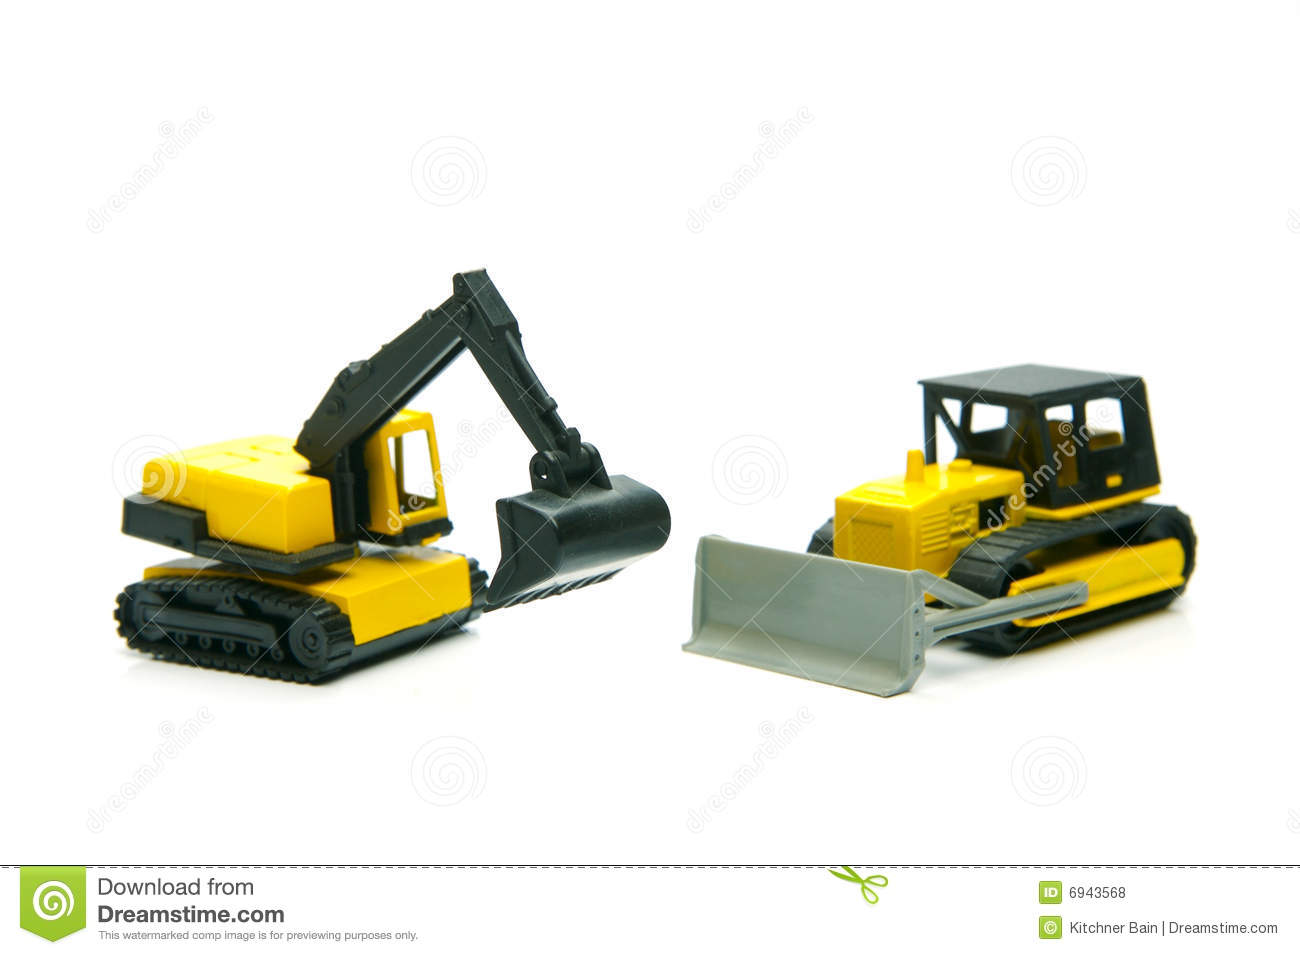 rc toy bulldozers with Miniature Construction Toys on Komatsu Intros D155axi 8 Rc besides Bruder Trucks For Kids likewise Bruder profi speelgoed grondverzet moreover Publix RC Semi Truck Remote Control Collectible Toy Truck With Trailer likewise El mas y el mejor9.